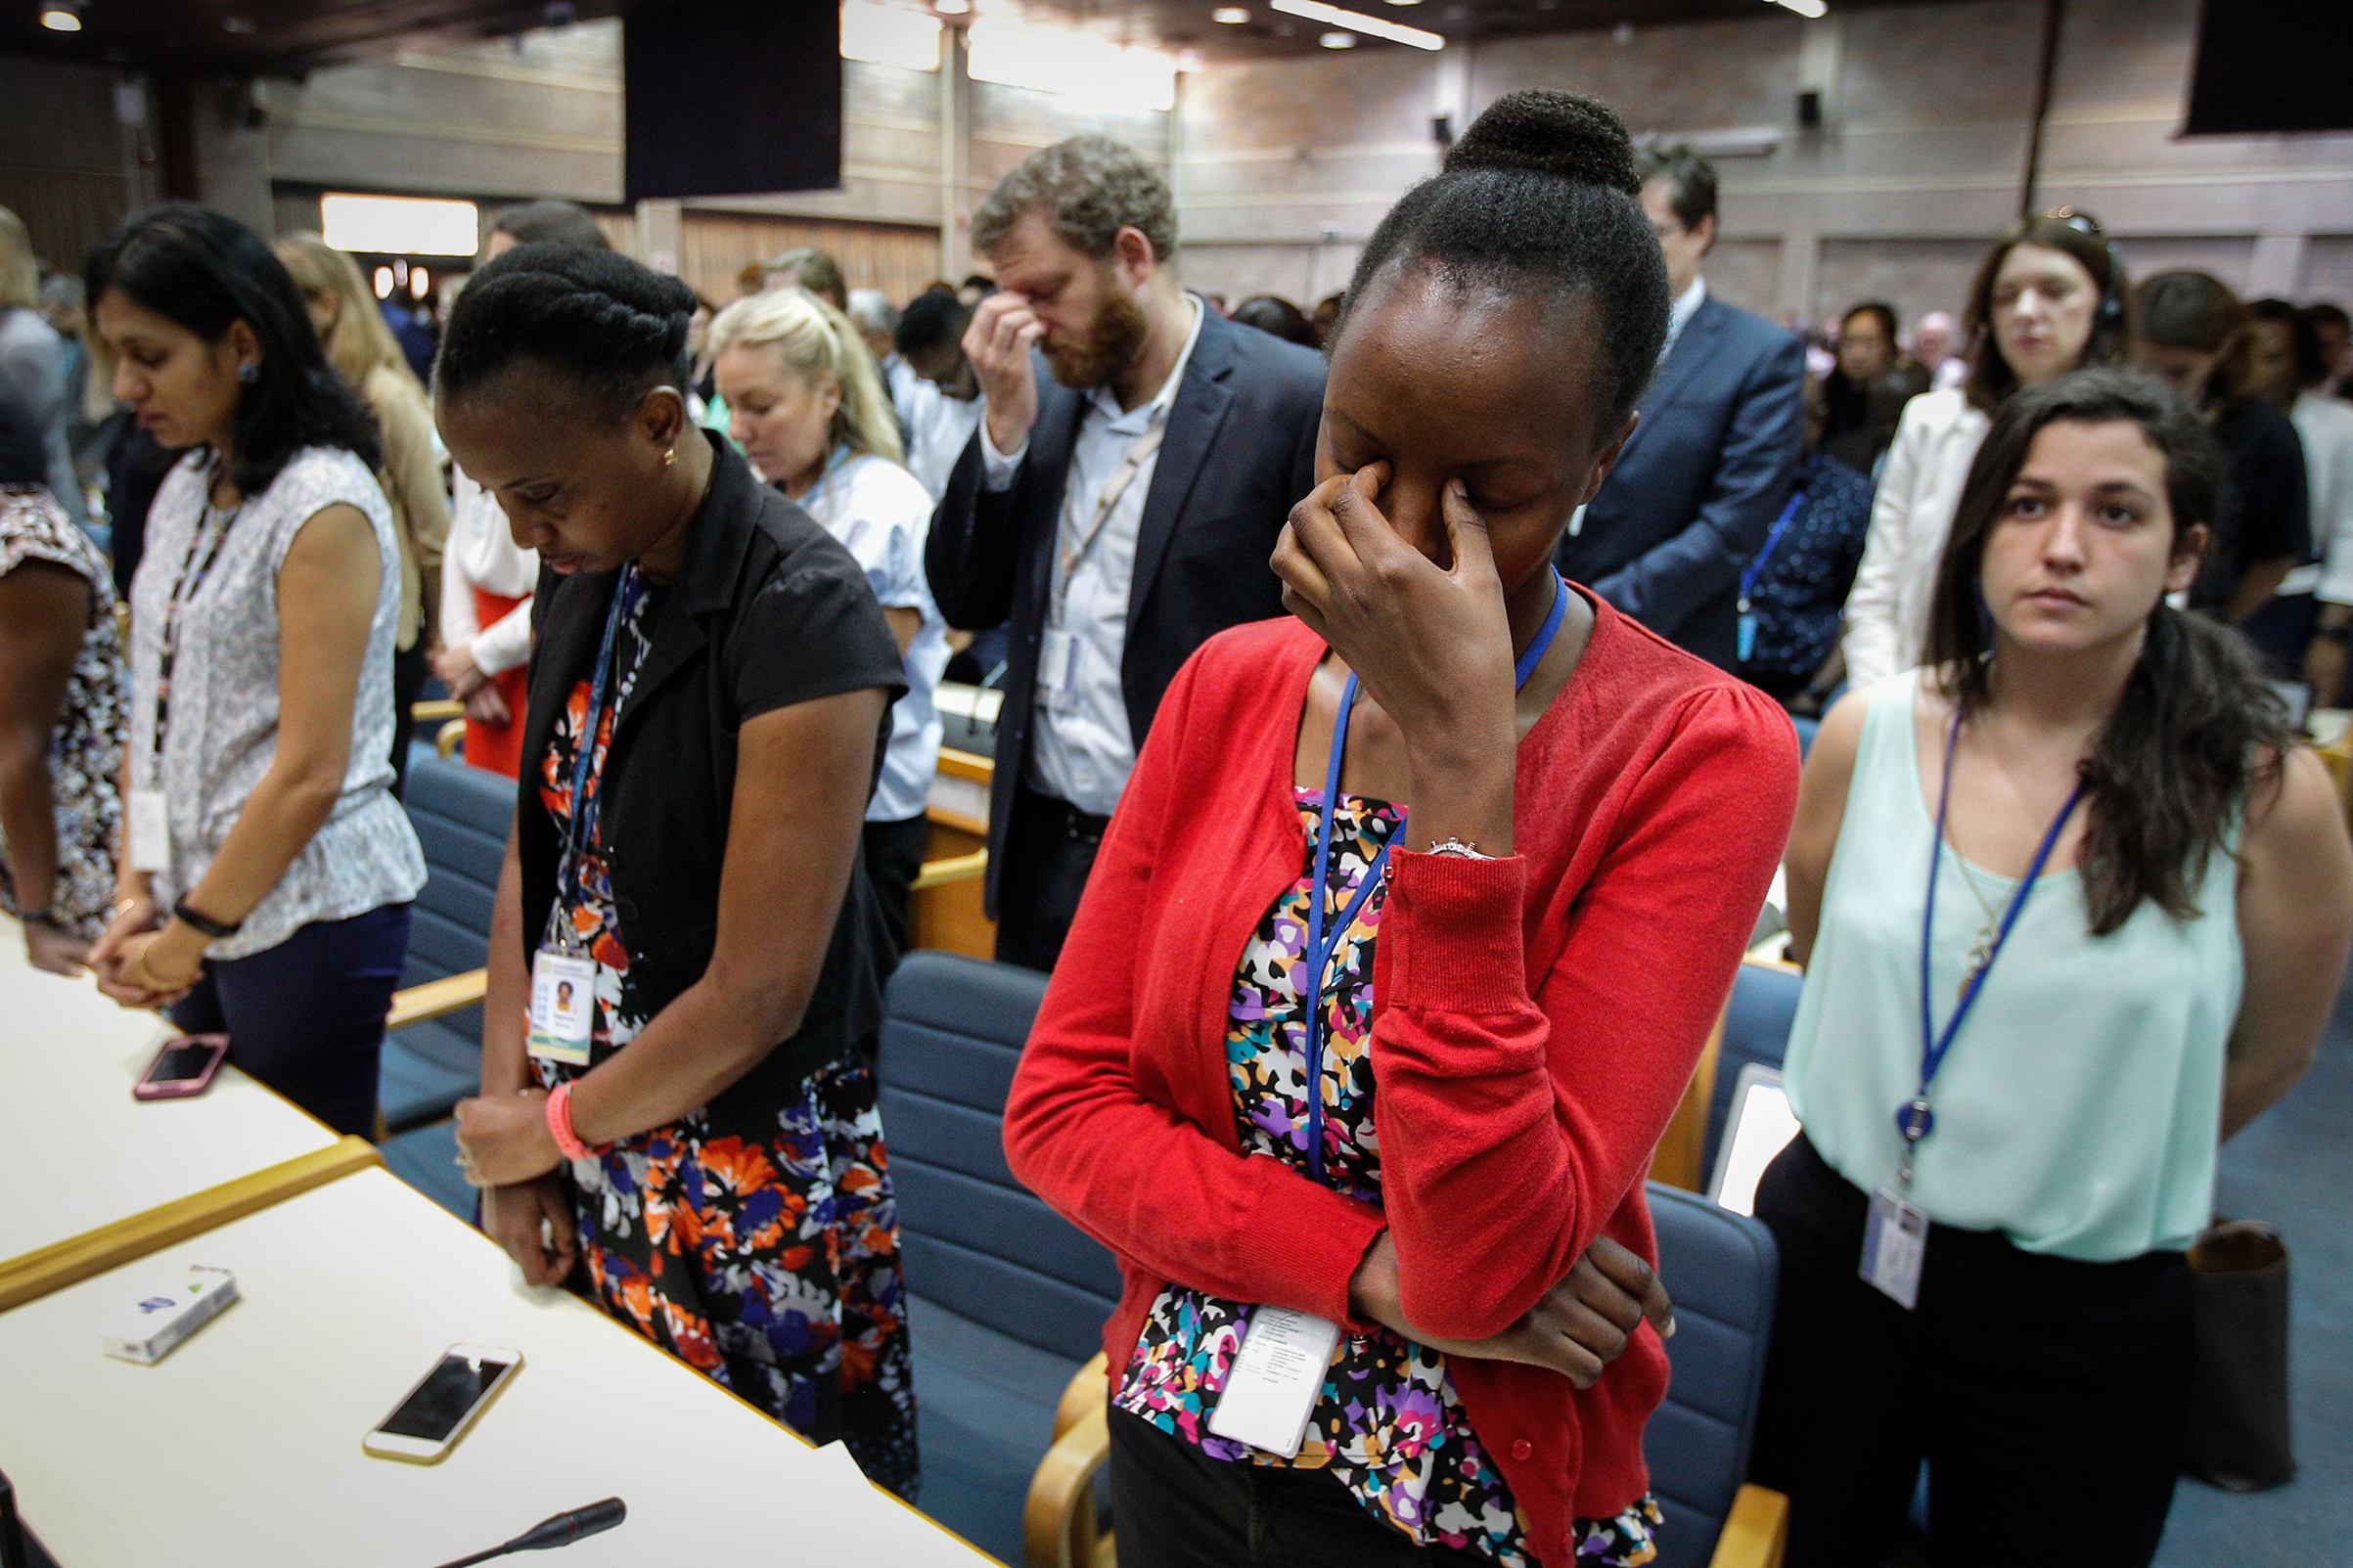 U.N. staff members observe a minute of silence for the victims of the Ethiopian Airlines crash, at the UN headquarters in Nairobi, Kenya, on March 11, 2019.